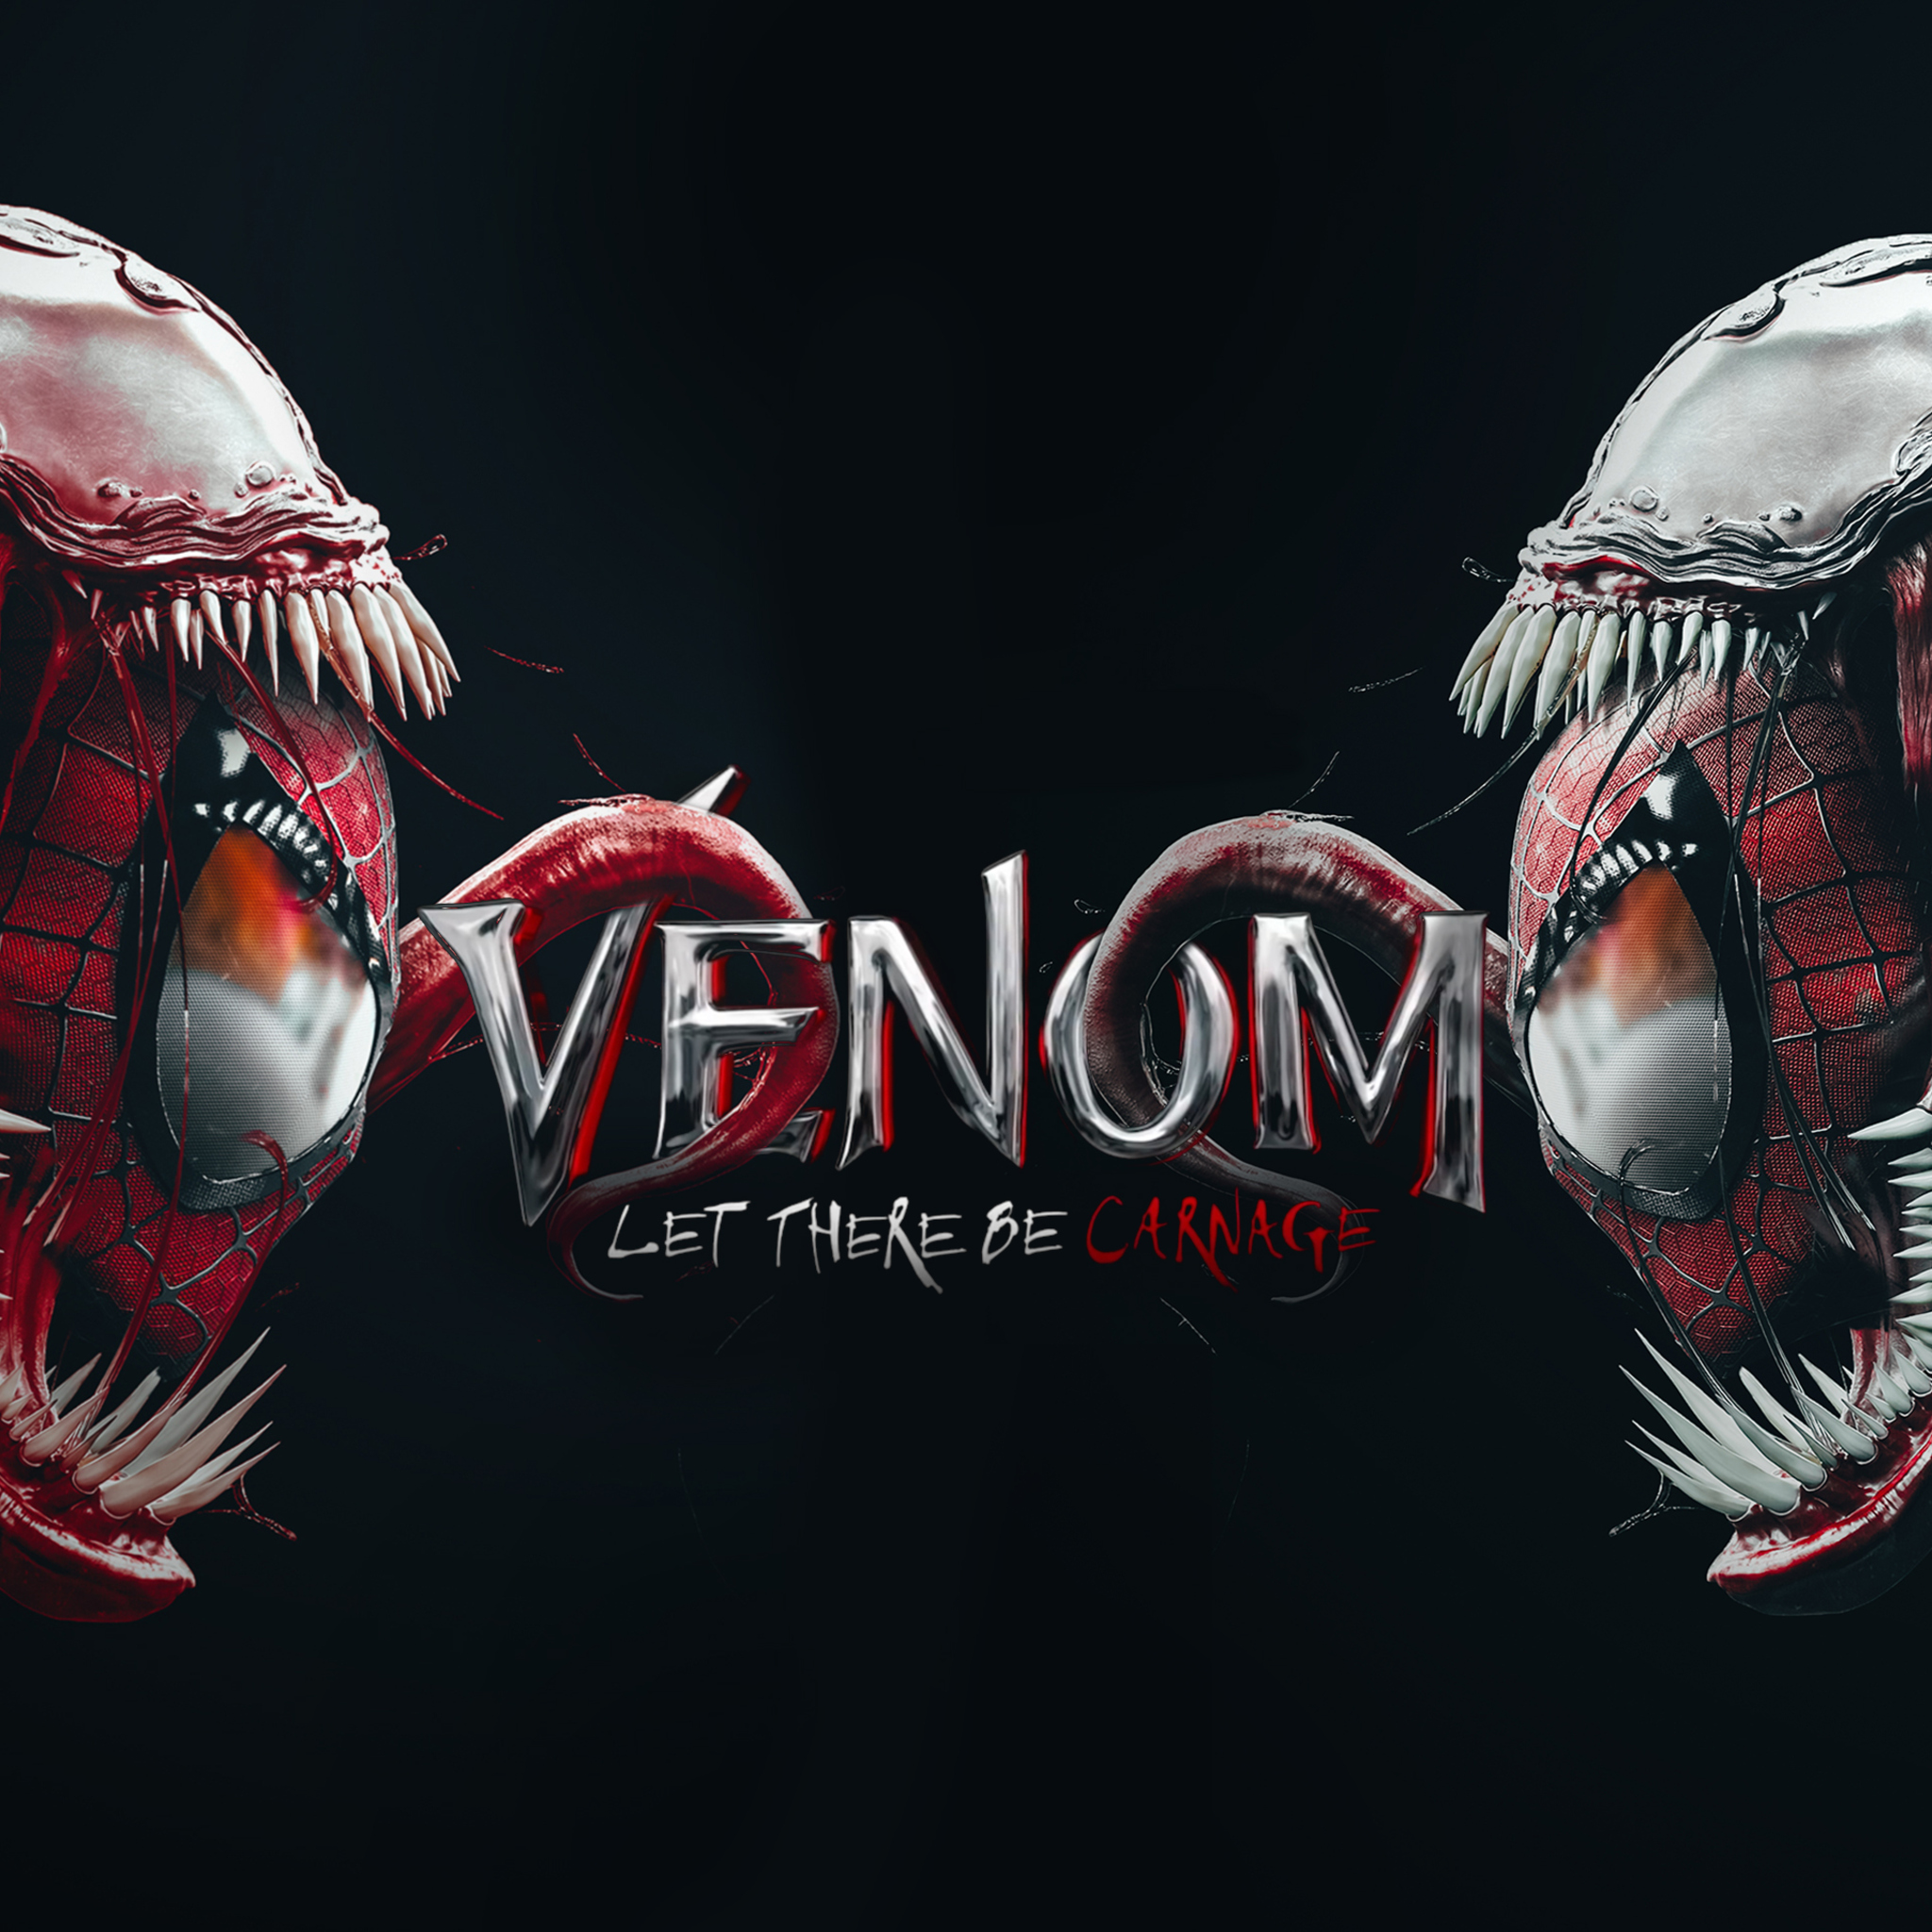 2048x2048 Venom Let There Be Carnage Movie Ipad Air HD 4k ...